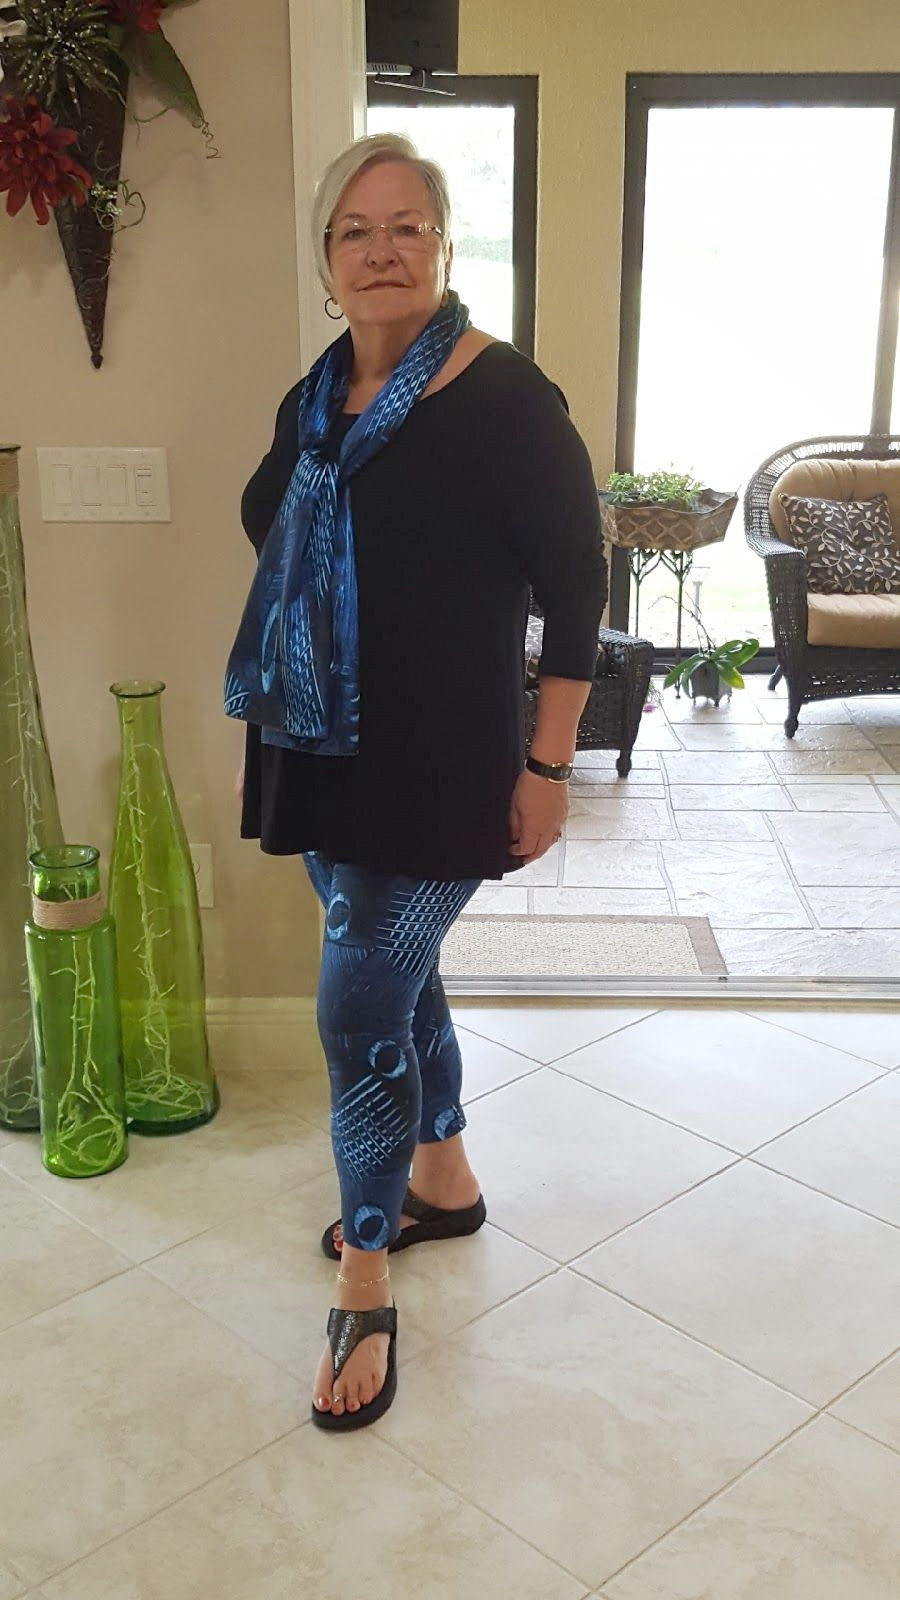 """Just wanted to let you know I'm a plus size women! PROUD OF IT! XL Mayhem yoga pants fit great!""    - Sheryl wearing the Mayhem yoga leggings and Mayhem satin chiffon scarf"